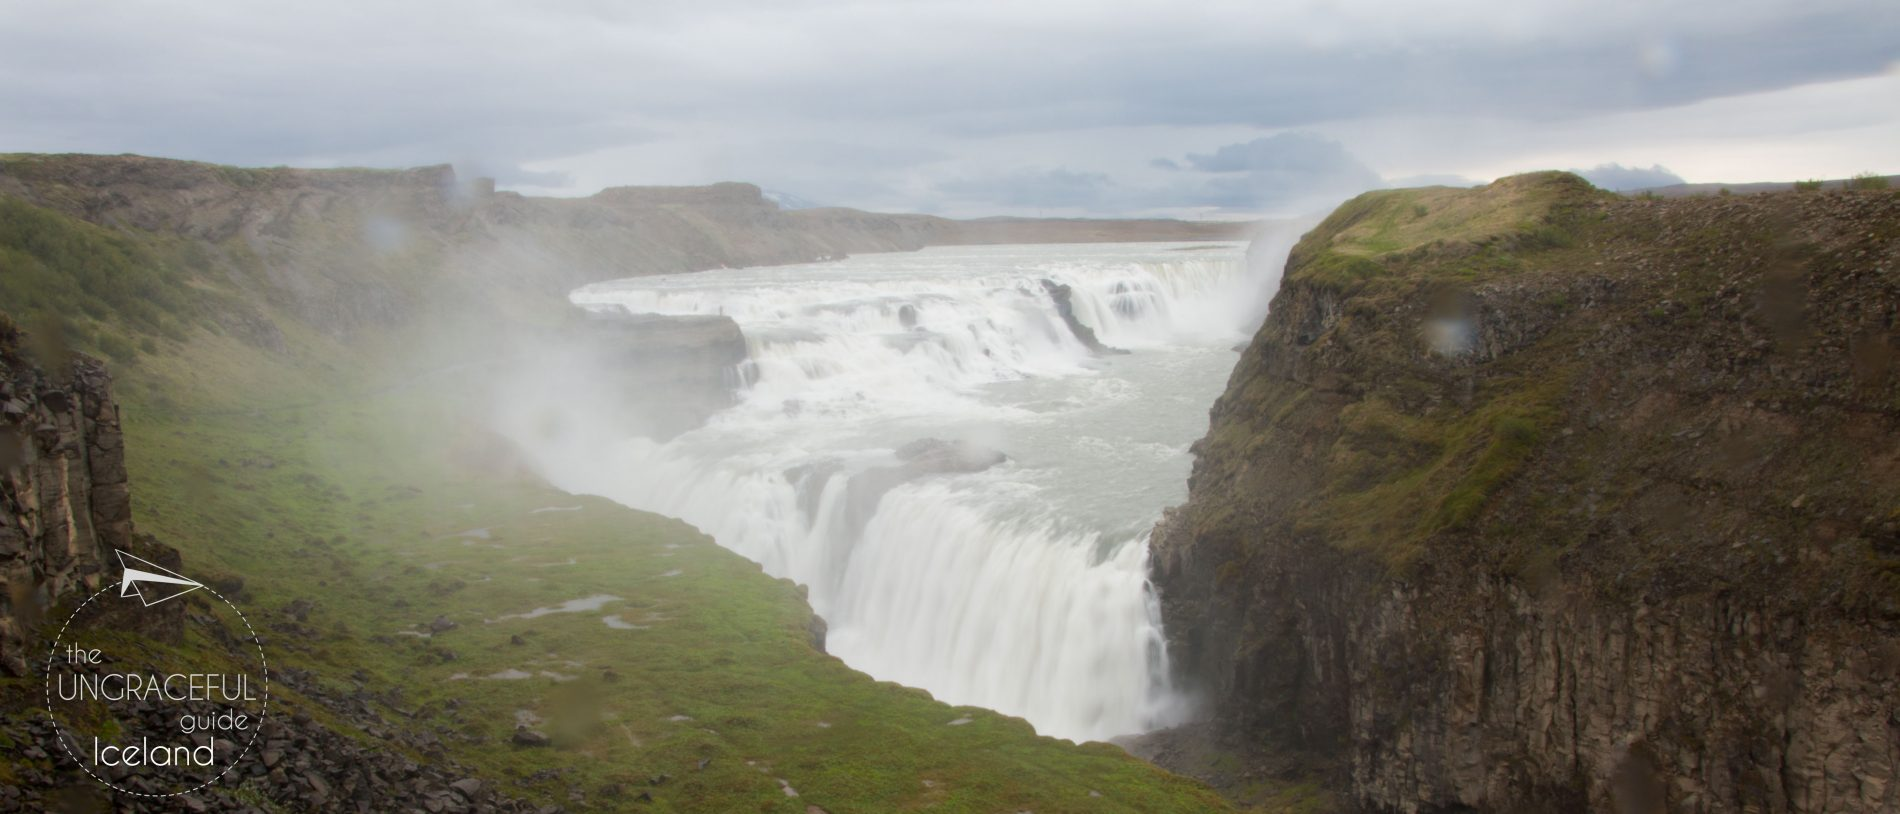 """<img src=""""images/"""" width=""""800"""" height=""""600"""" alt=""""iceland - waterfall - Iceland: How to get the most on a budget"""">"""